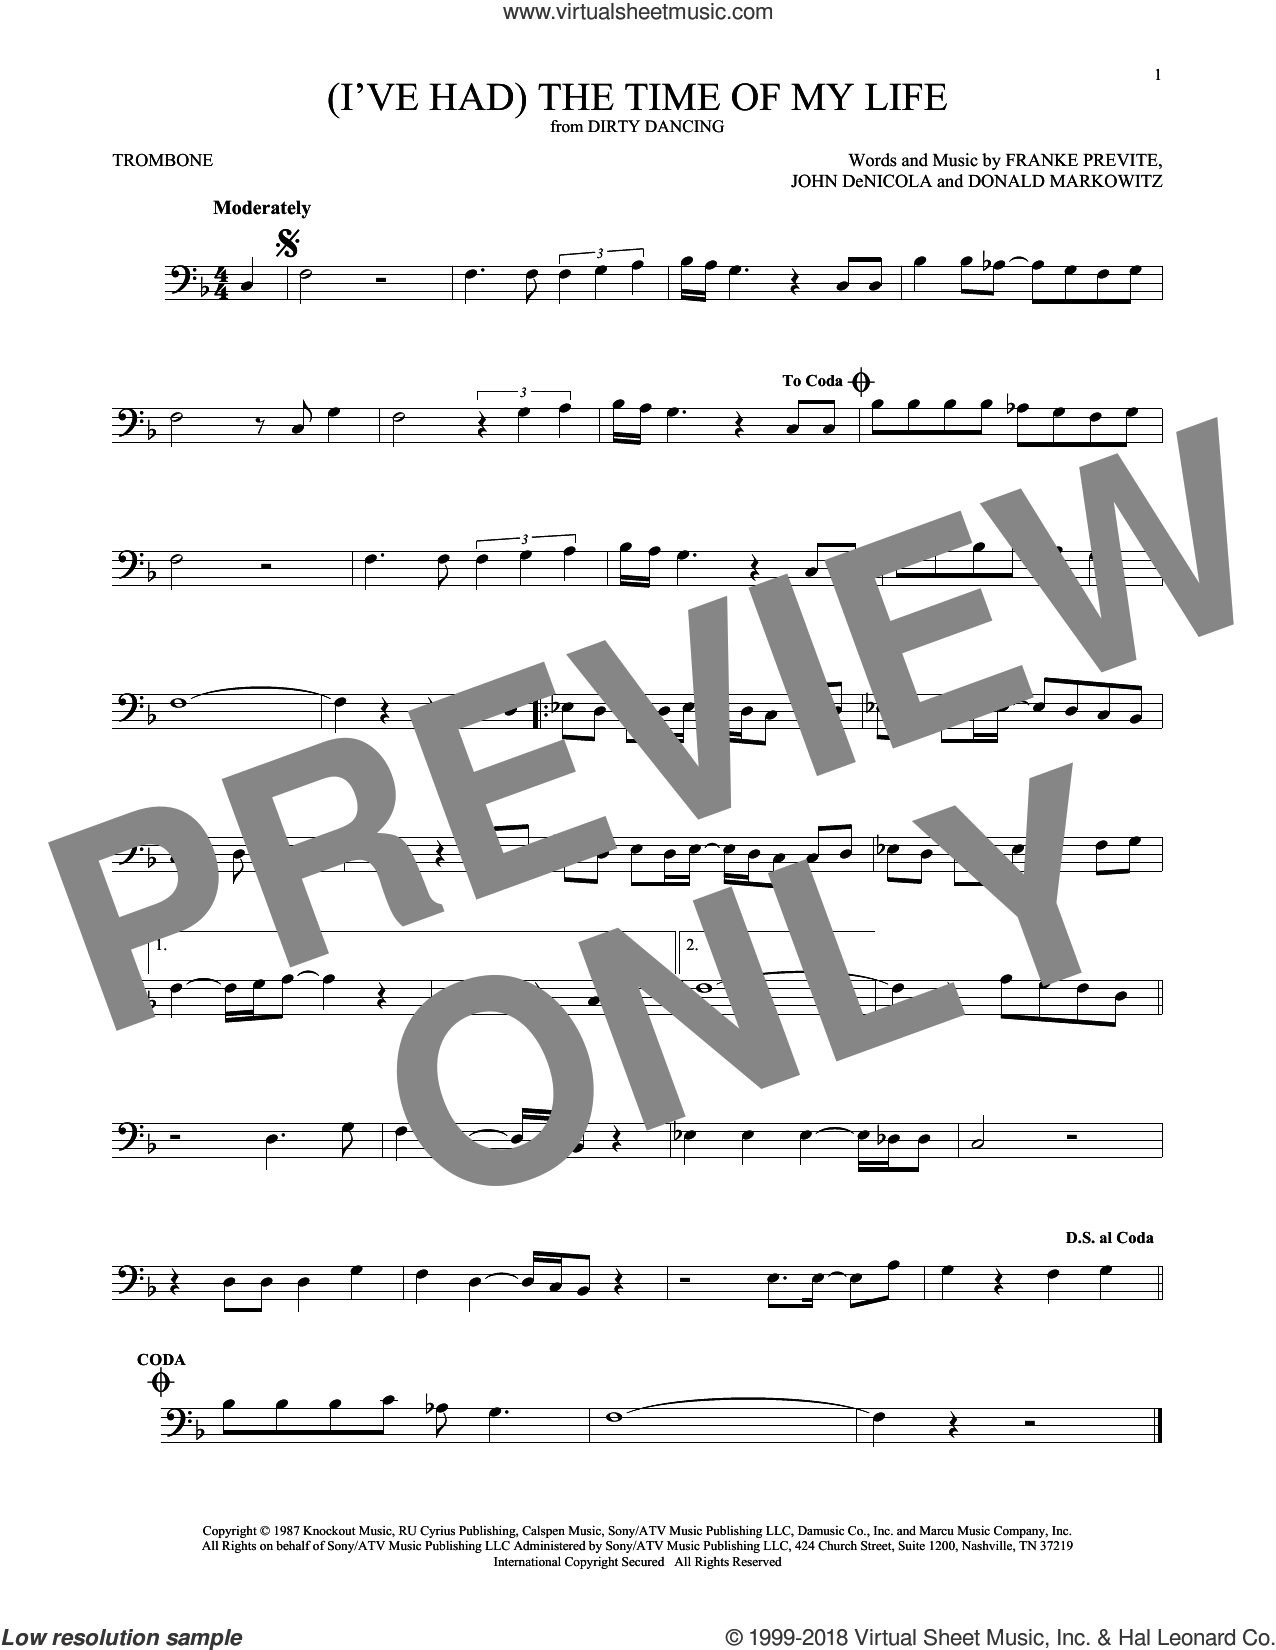 (I've Had) The Time Of My Life sheet music for trombone solo by Bill Medley & Jennifer Warnes. Score Image Preview.